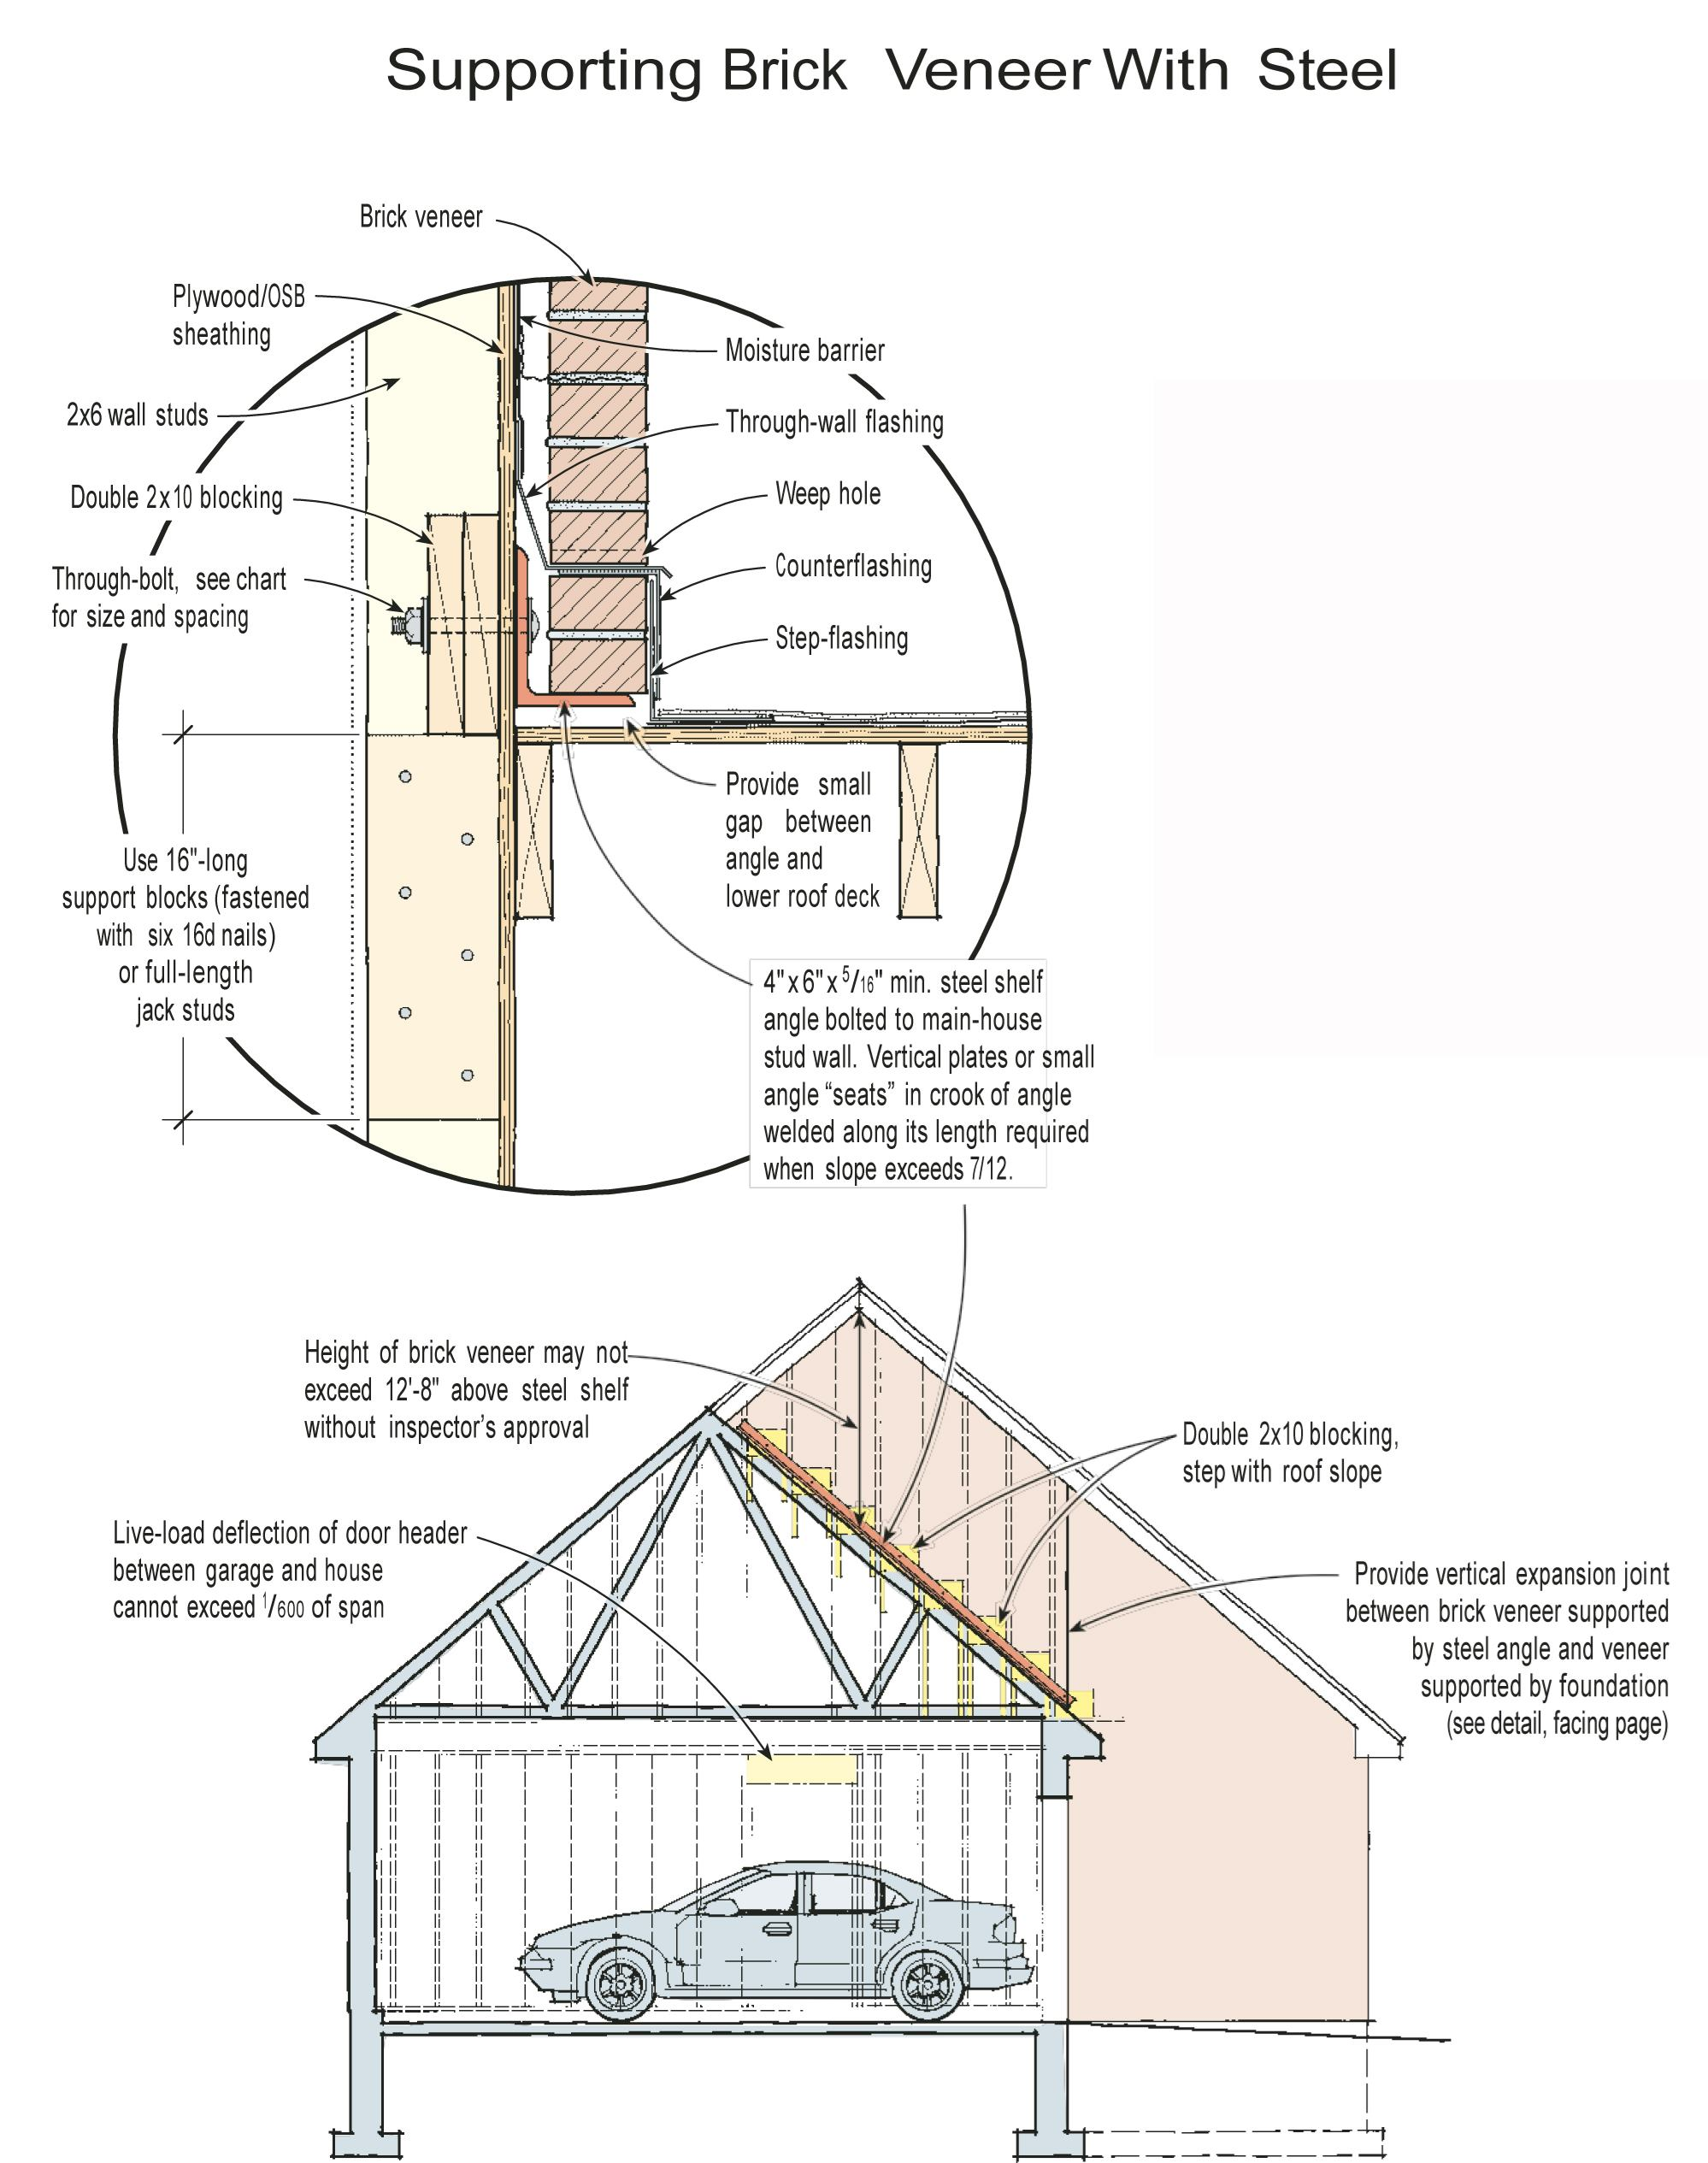 Supporting Brick Veneer On Wood Framing Jlc Online Framing Joints Masonry Construction